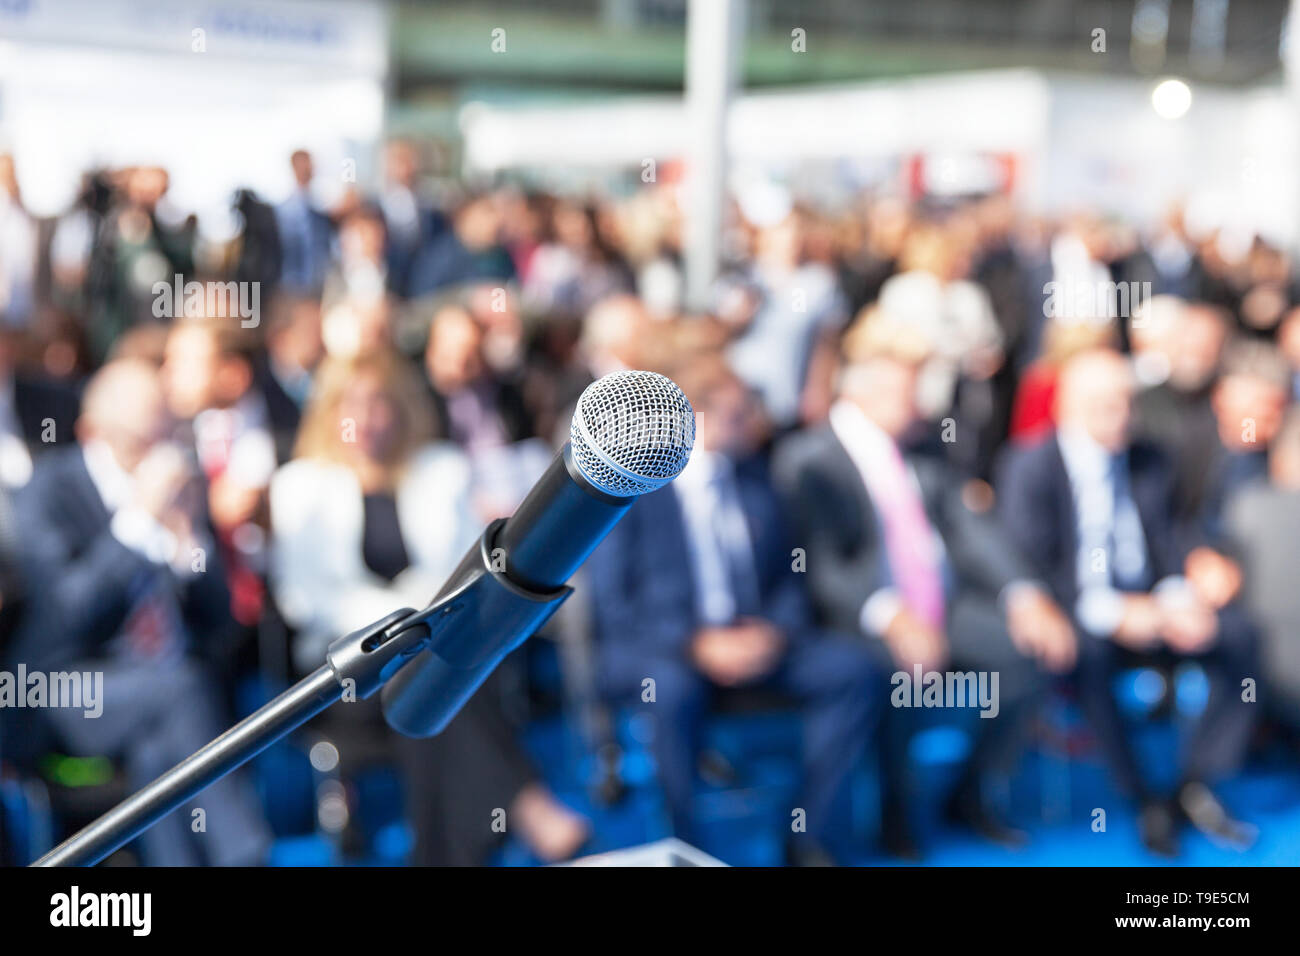 Microphone in focus against blurred audience - Stock Image